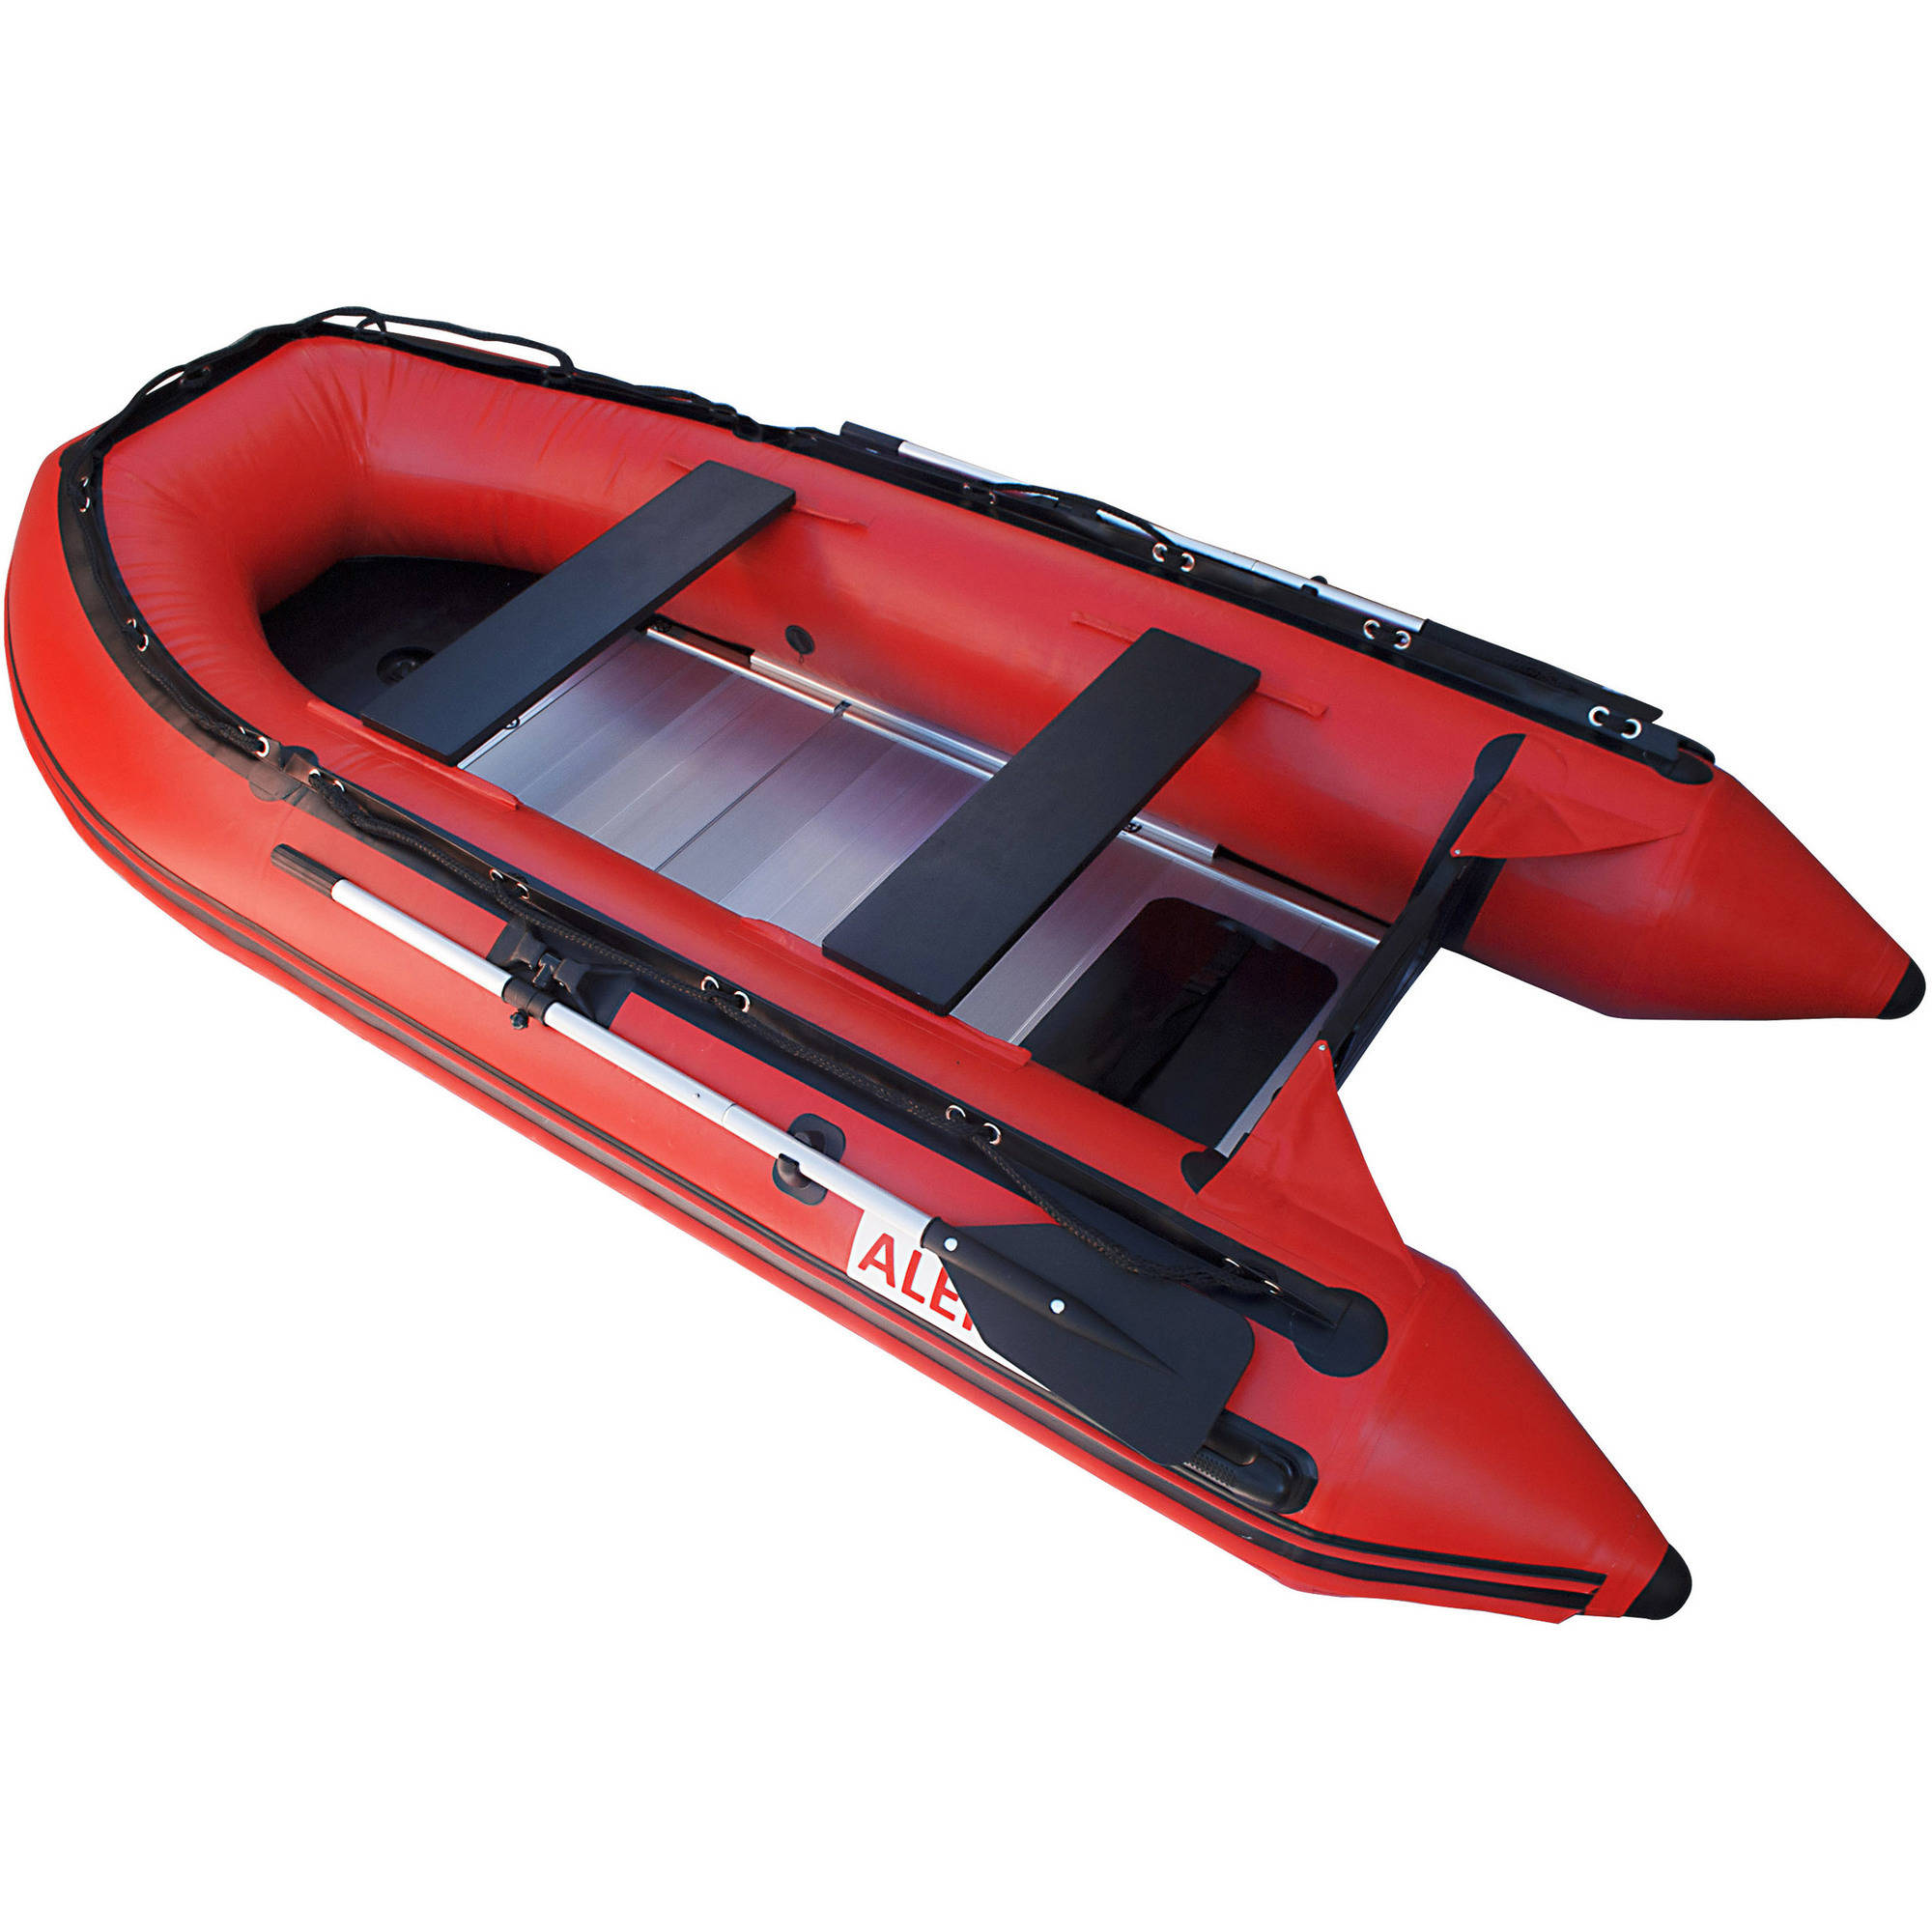 ALEKO Boat 13.8' Inflatable Boat with Aluminum Floor 7 Person Fishing Boat BT420R, Red by ALEKO